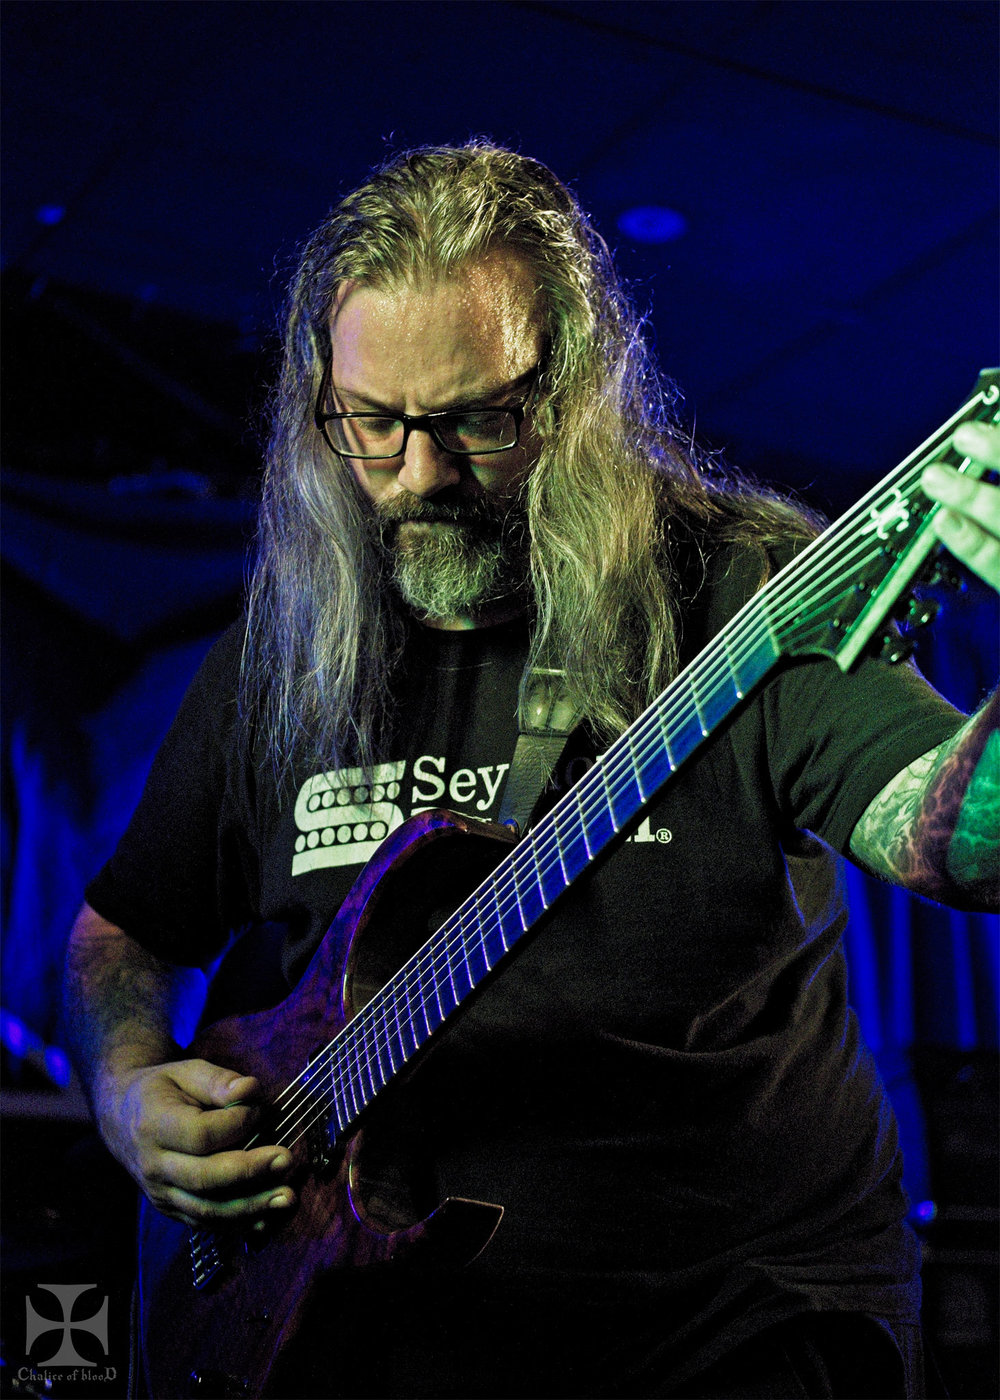 Gorguts---7-watermarked.jpg